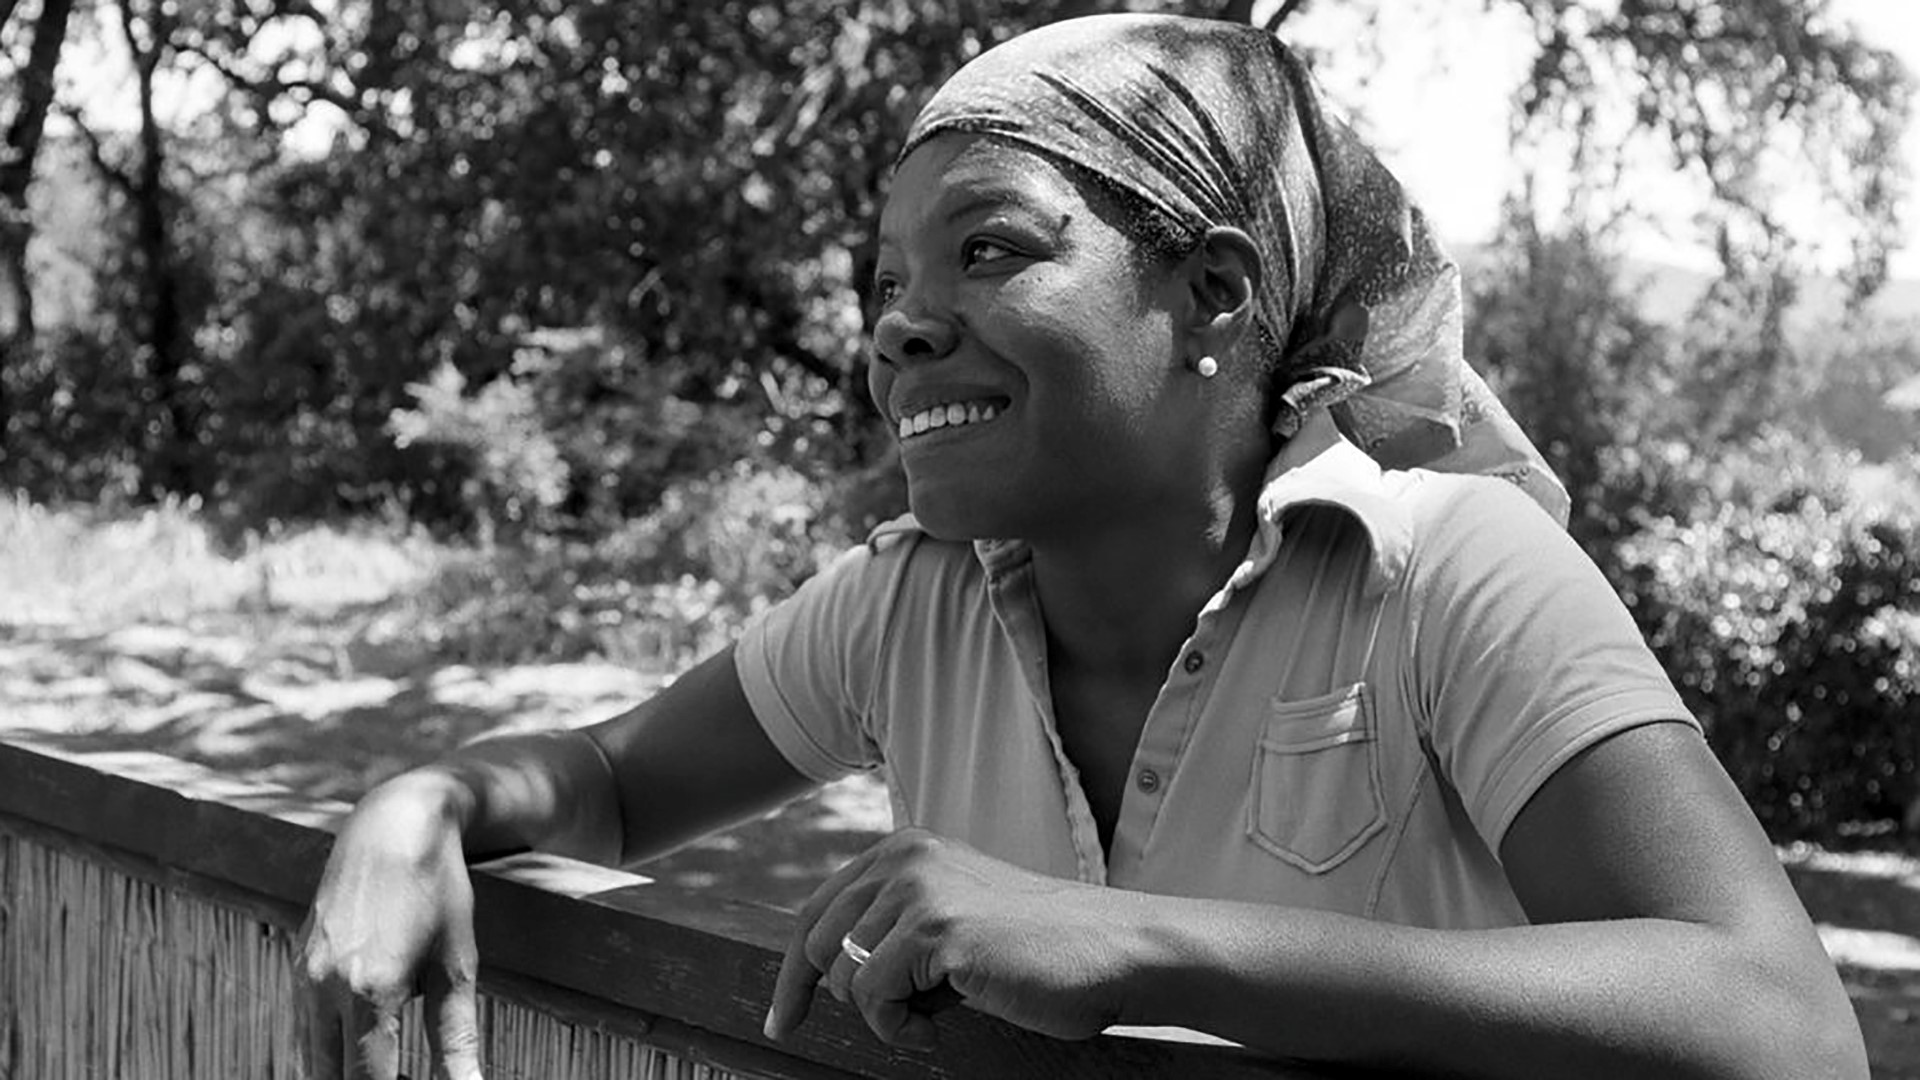 a angelou and still i rise about the film american masters a angelou and still i rise about the film american masters pbs